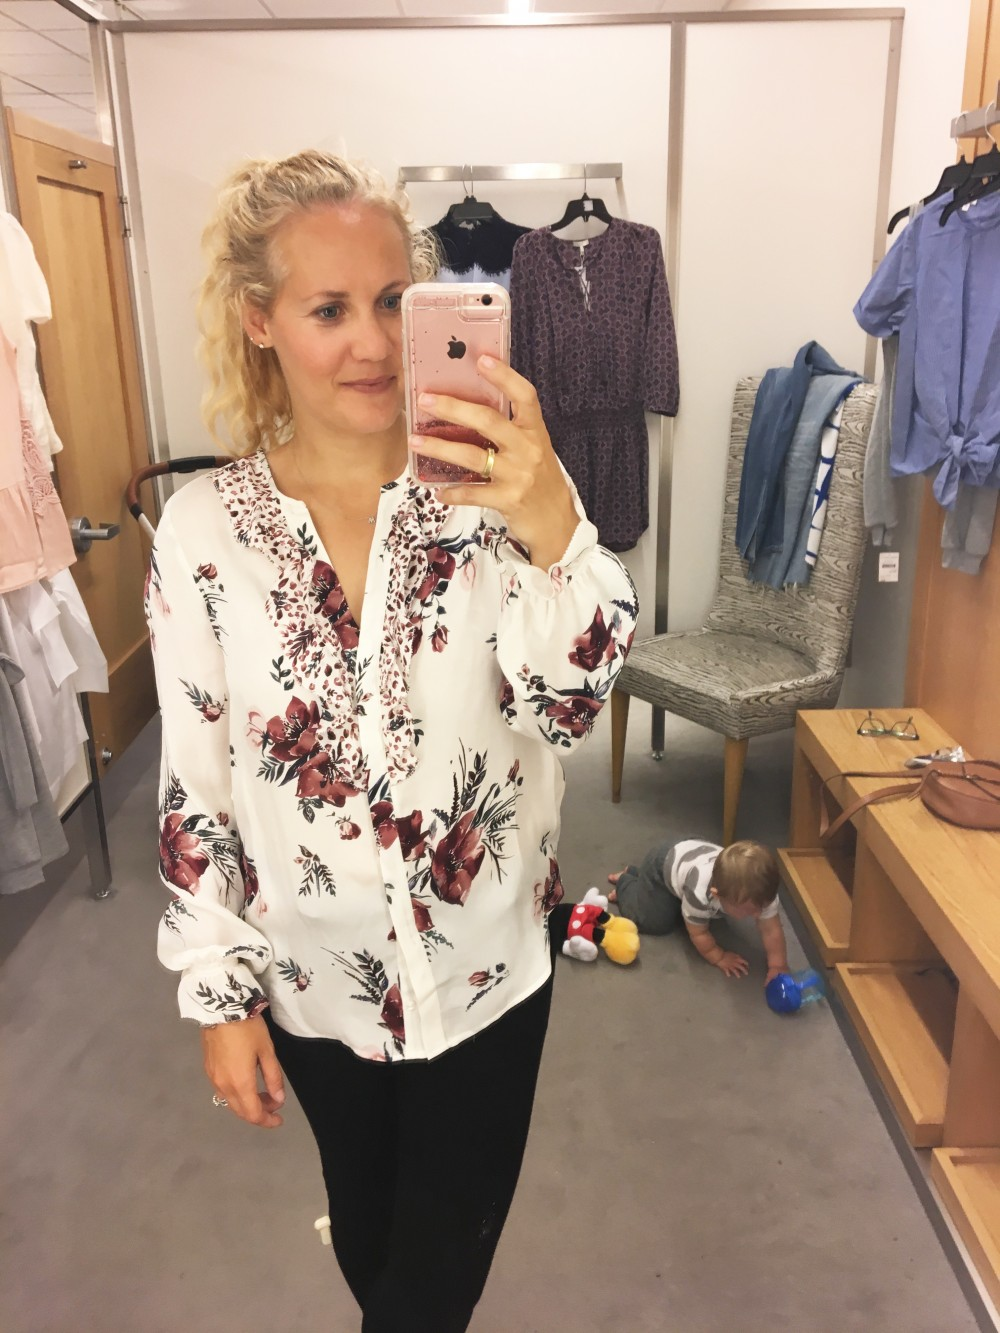 Dressing Room Diaries- Nordstrom Anniversary Sale-Fall Tops-Blogger Picks for the NSale-Nordstrom Sale-Fall Style-Fall Fashion 2017-Have Need Want 9